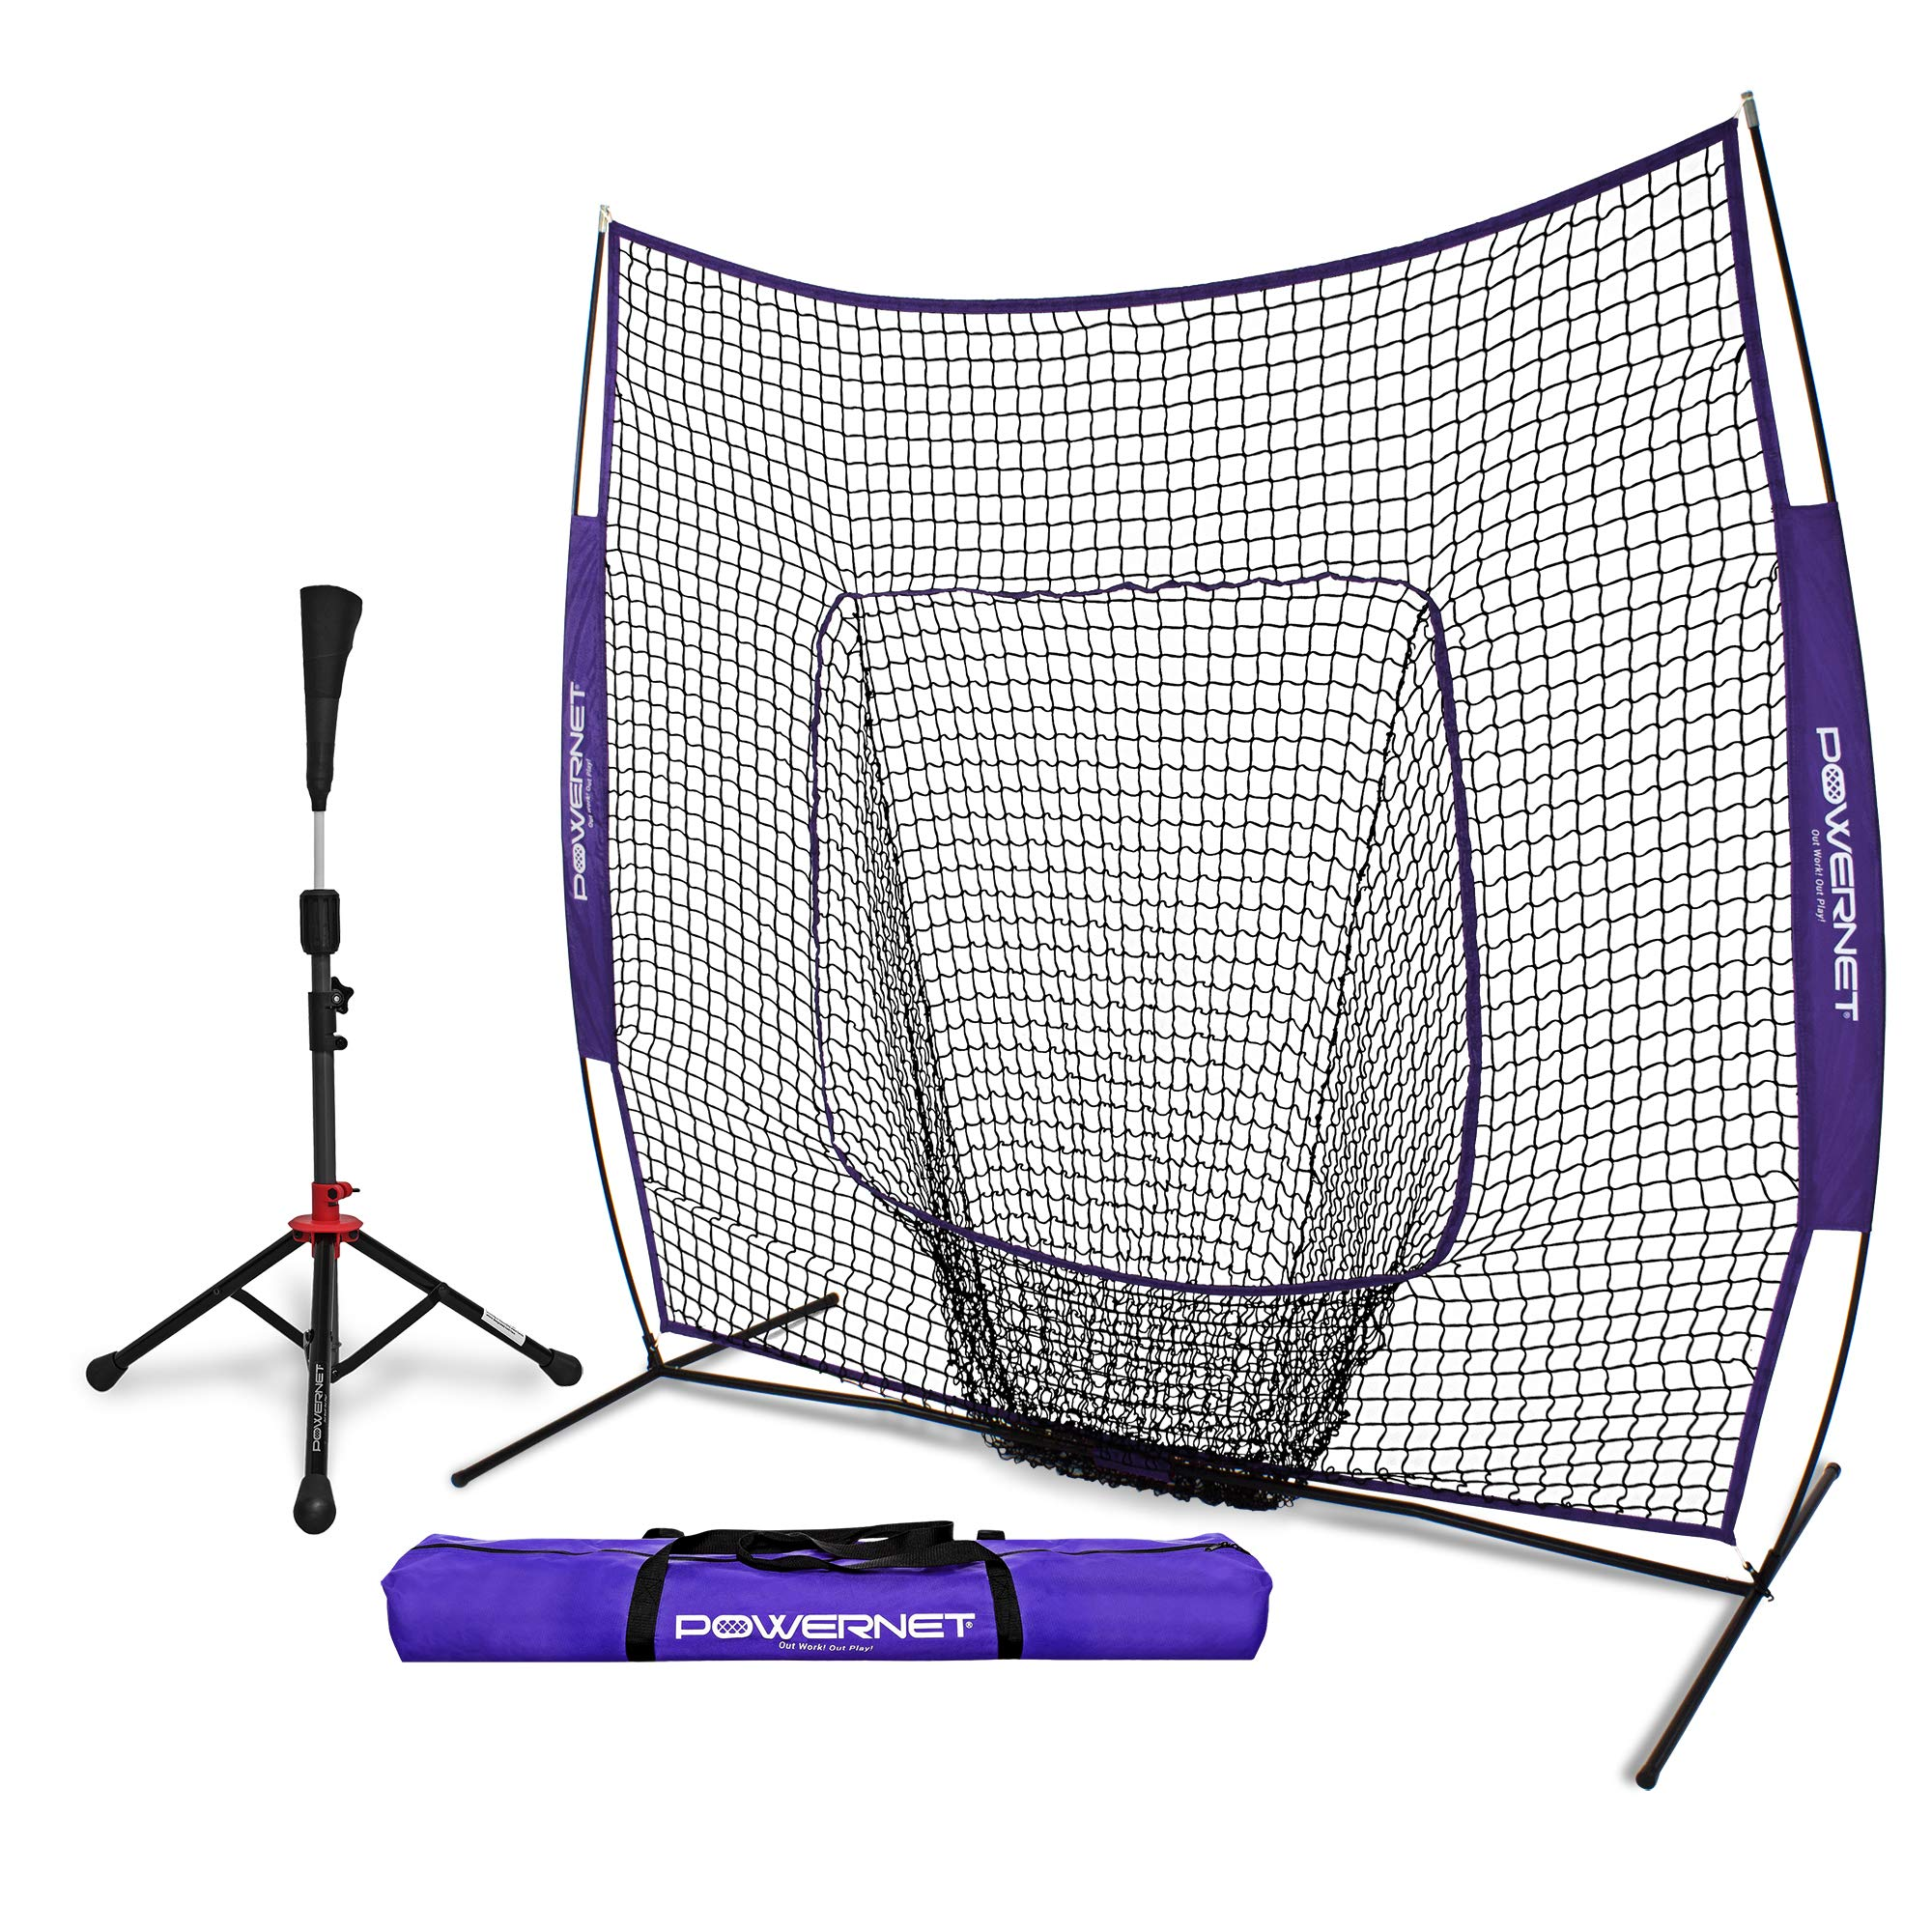 PowerNet Baseball Softball Practice Net 7x7 with Deluxe Tee (Purple) | Practice Hitting, Pitching, Batting, Fielding | Portable, Backstop, Training Aid, Lg Mouth, Bow frame | Training Equipment Bundle by PowerNet